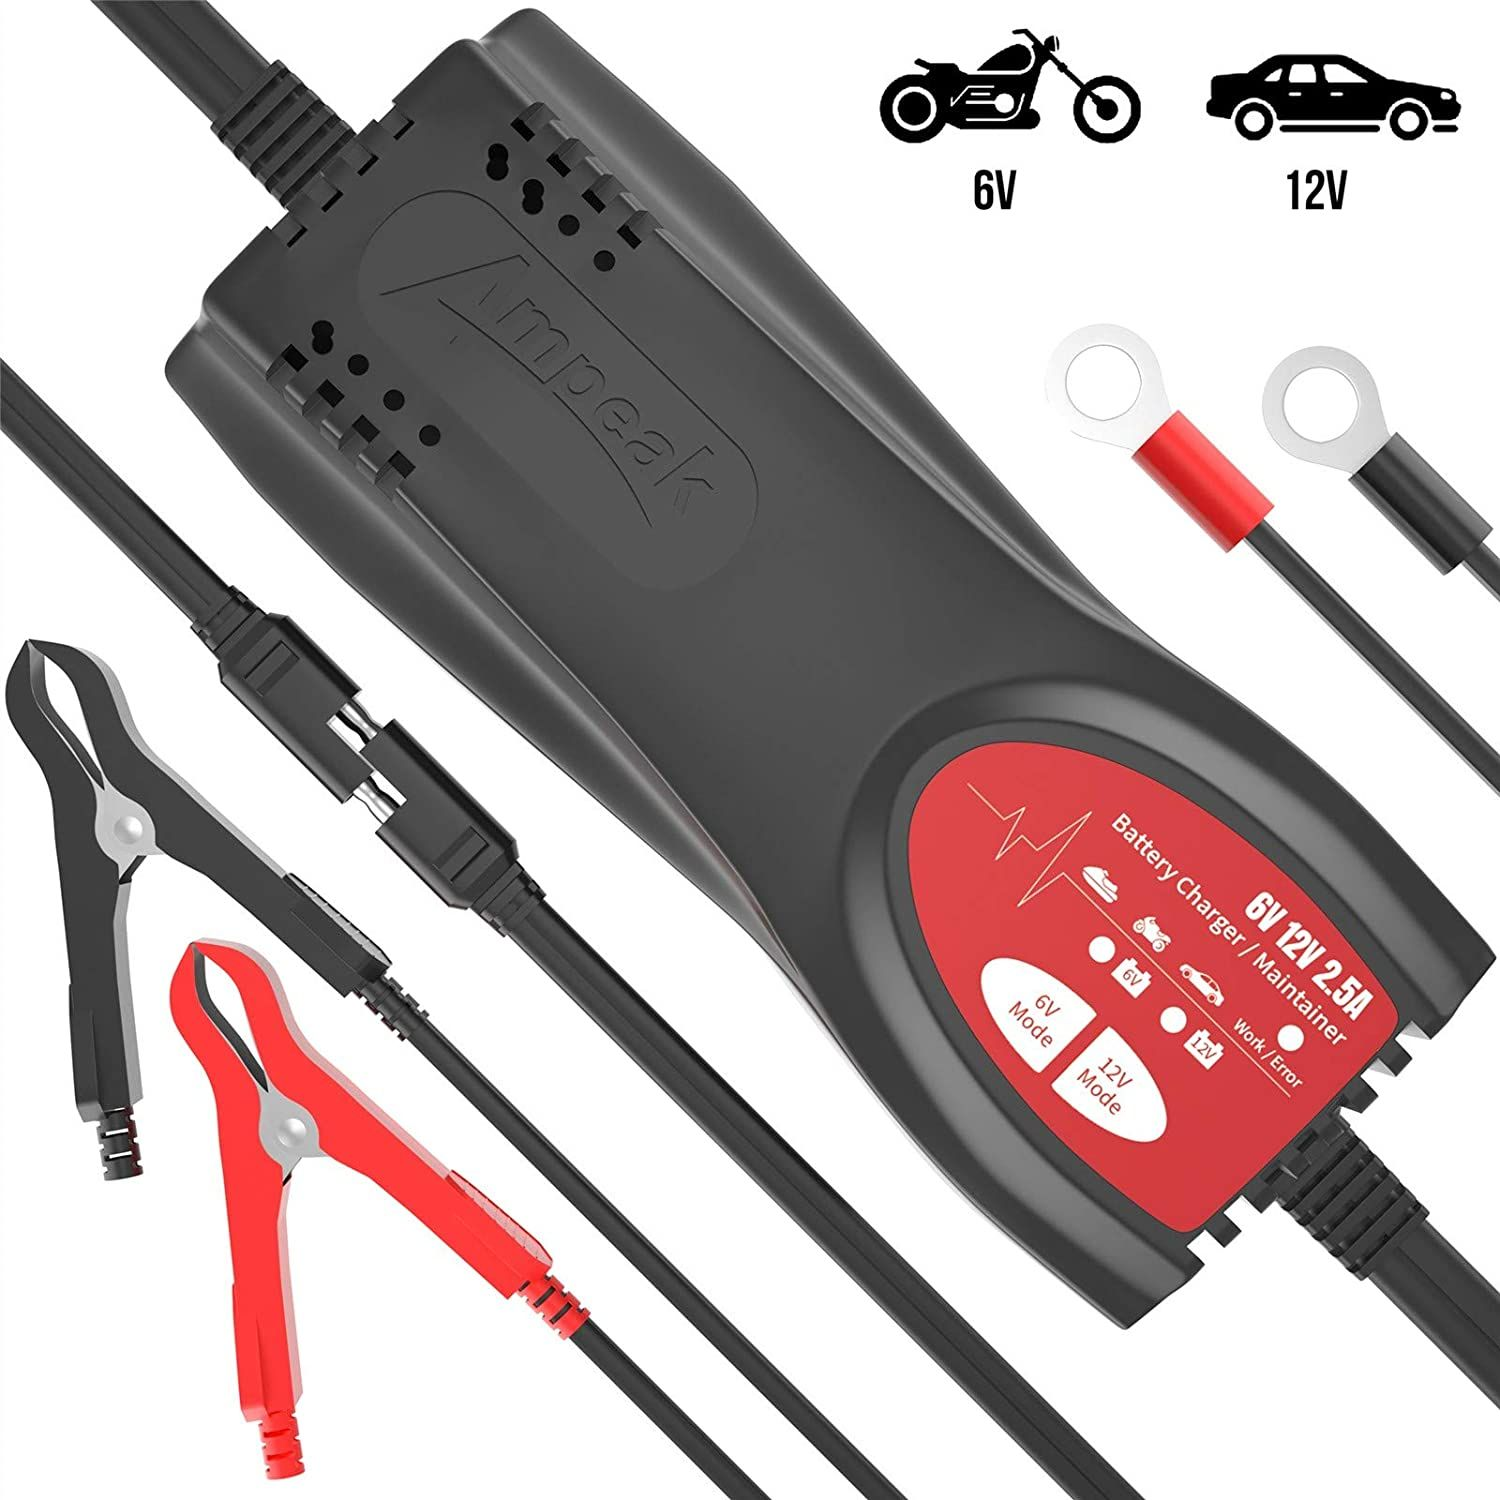 Contents Reviews Ampeak 6v 12v Car Battery Charger 2 5a Automatic Trickle Charger Maintainer